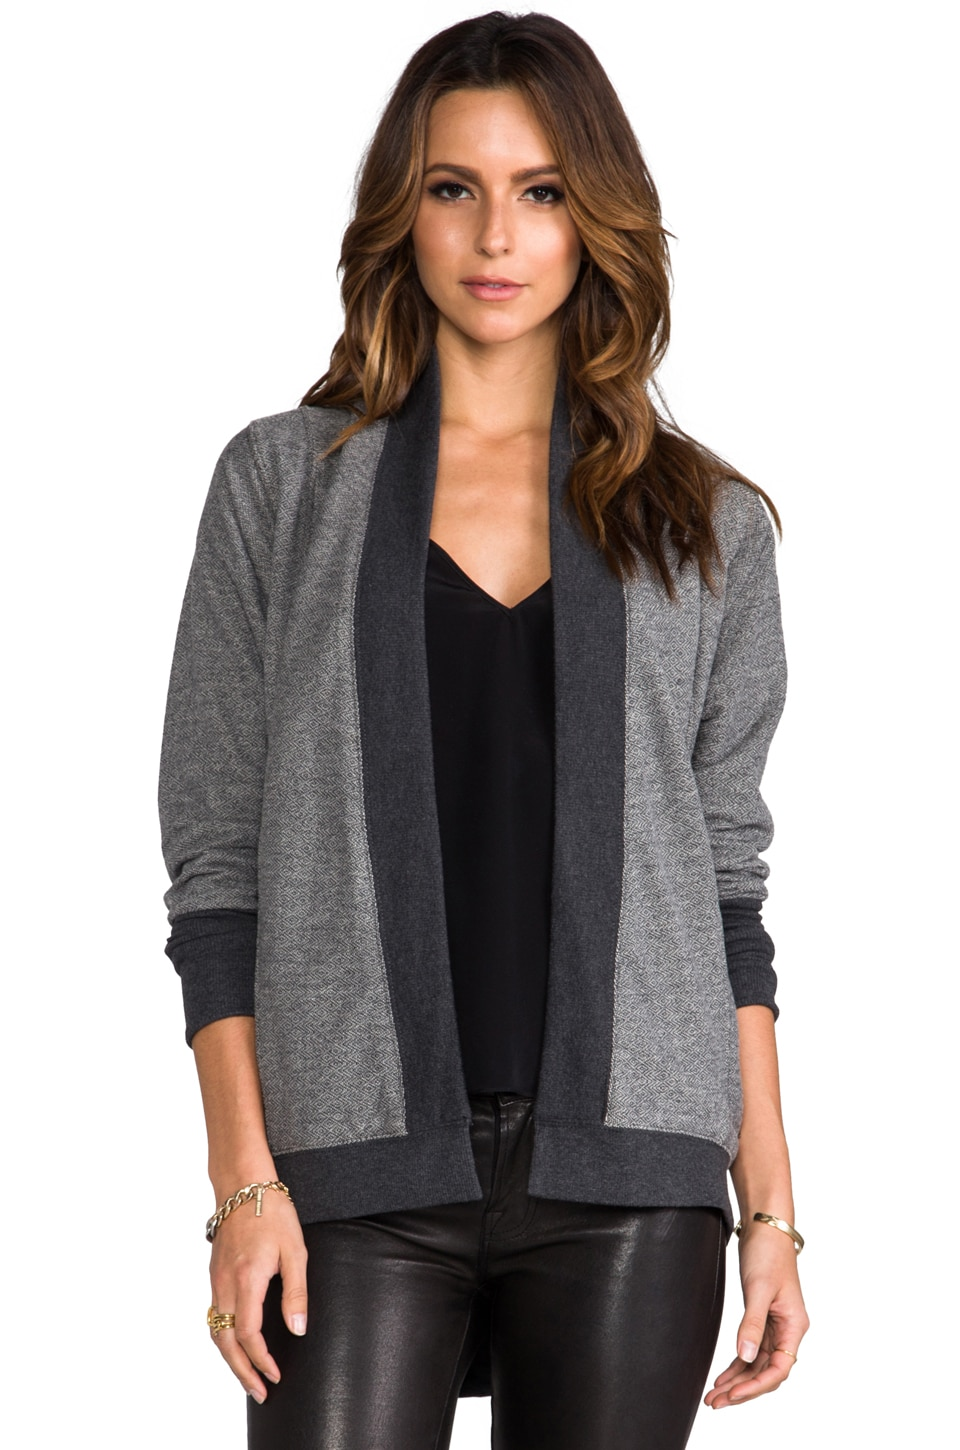 BB Dakota Daron Diamond Jacquard Wrap in Dark Heather Grey